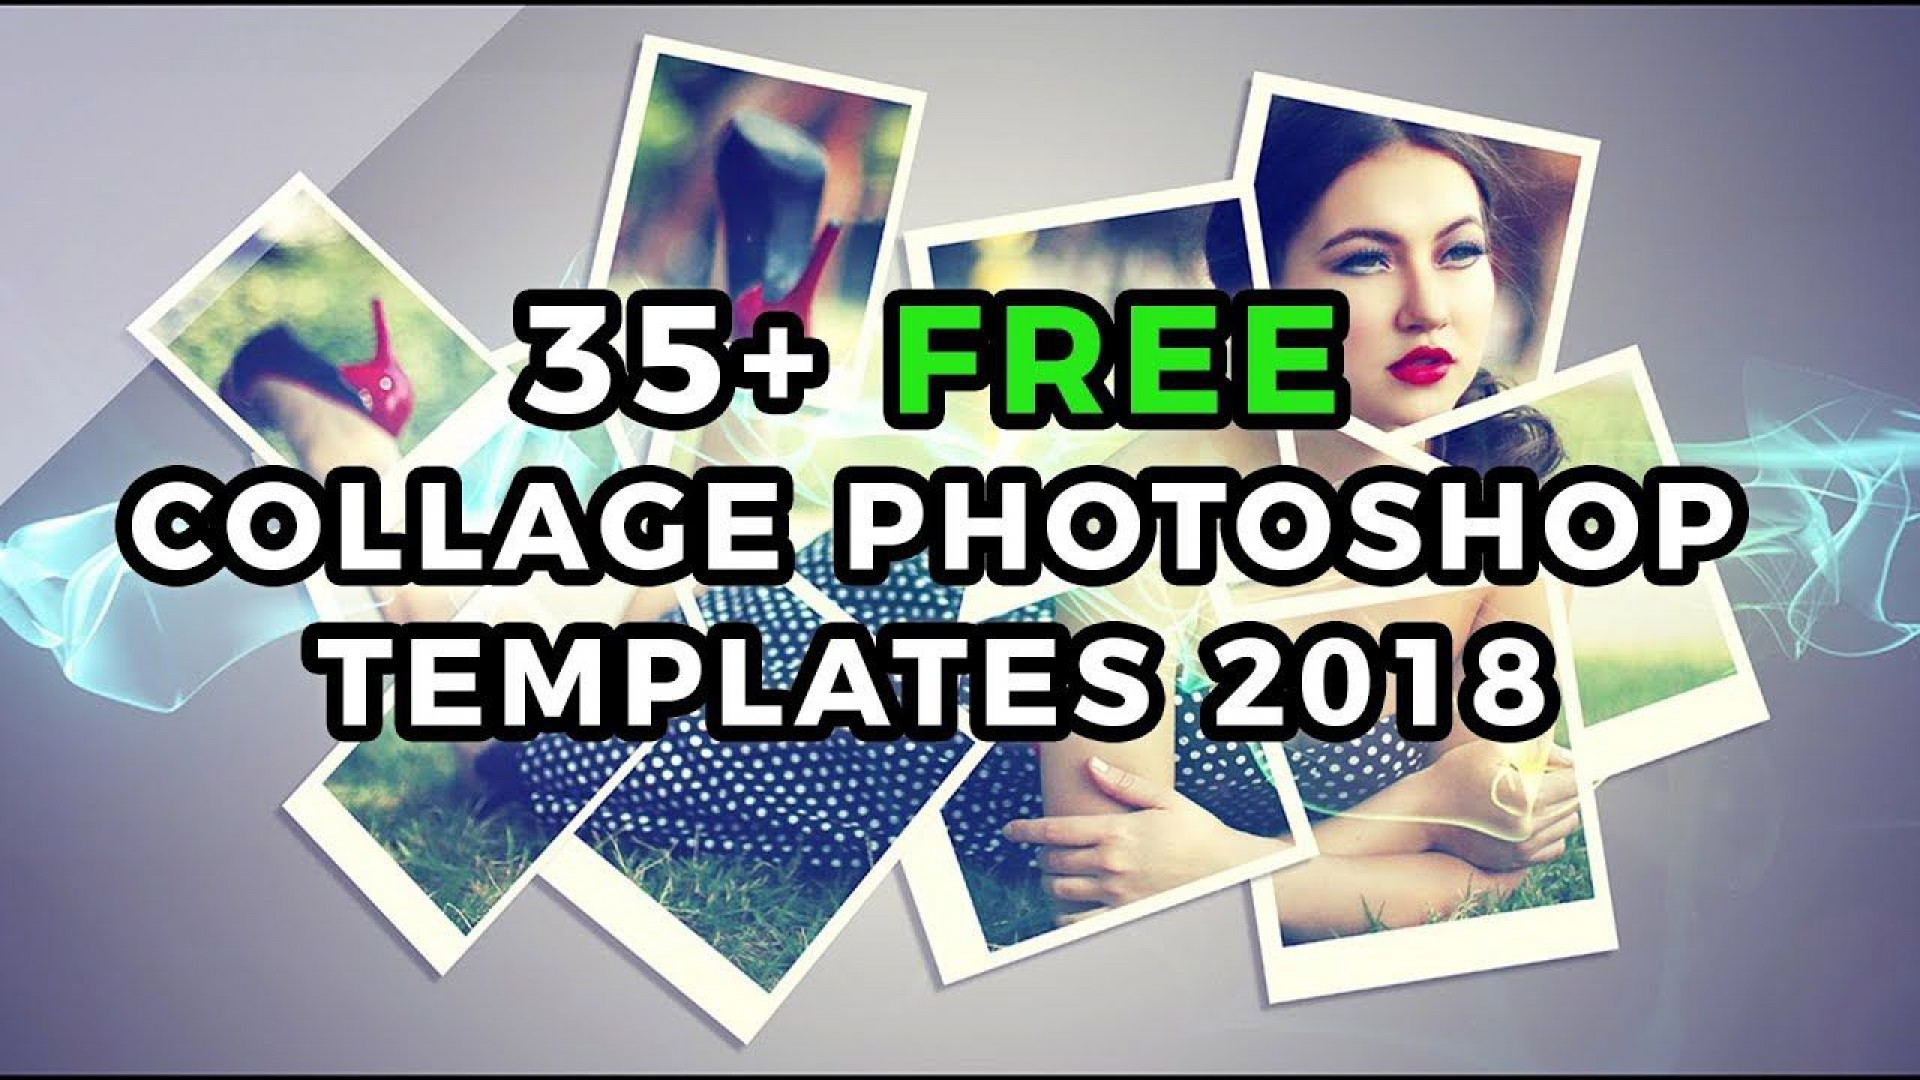 000 Simple Free Photoshop Collage Template High Resolution  Templates Psd Download Photo For Element1920